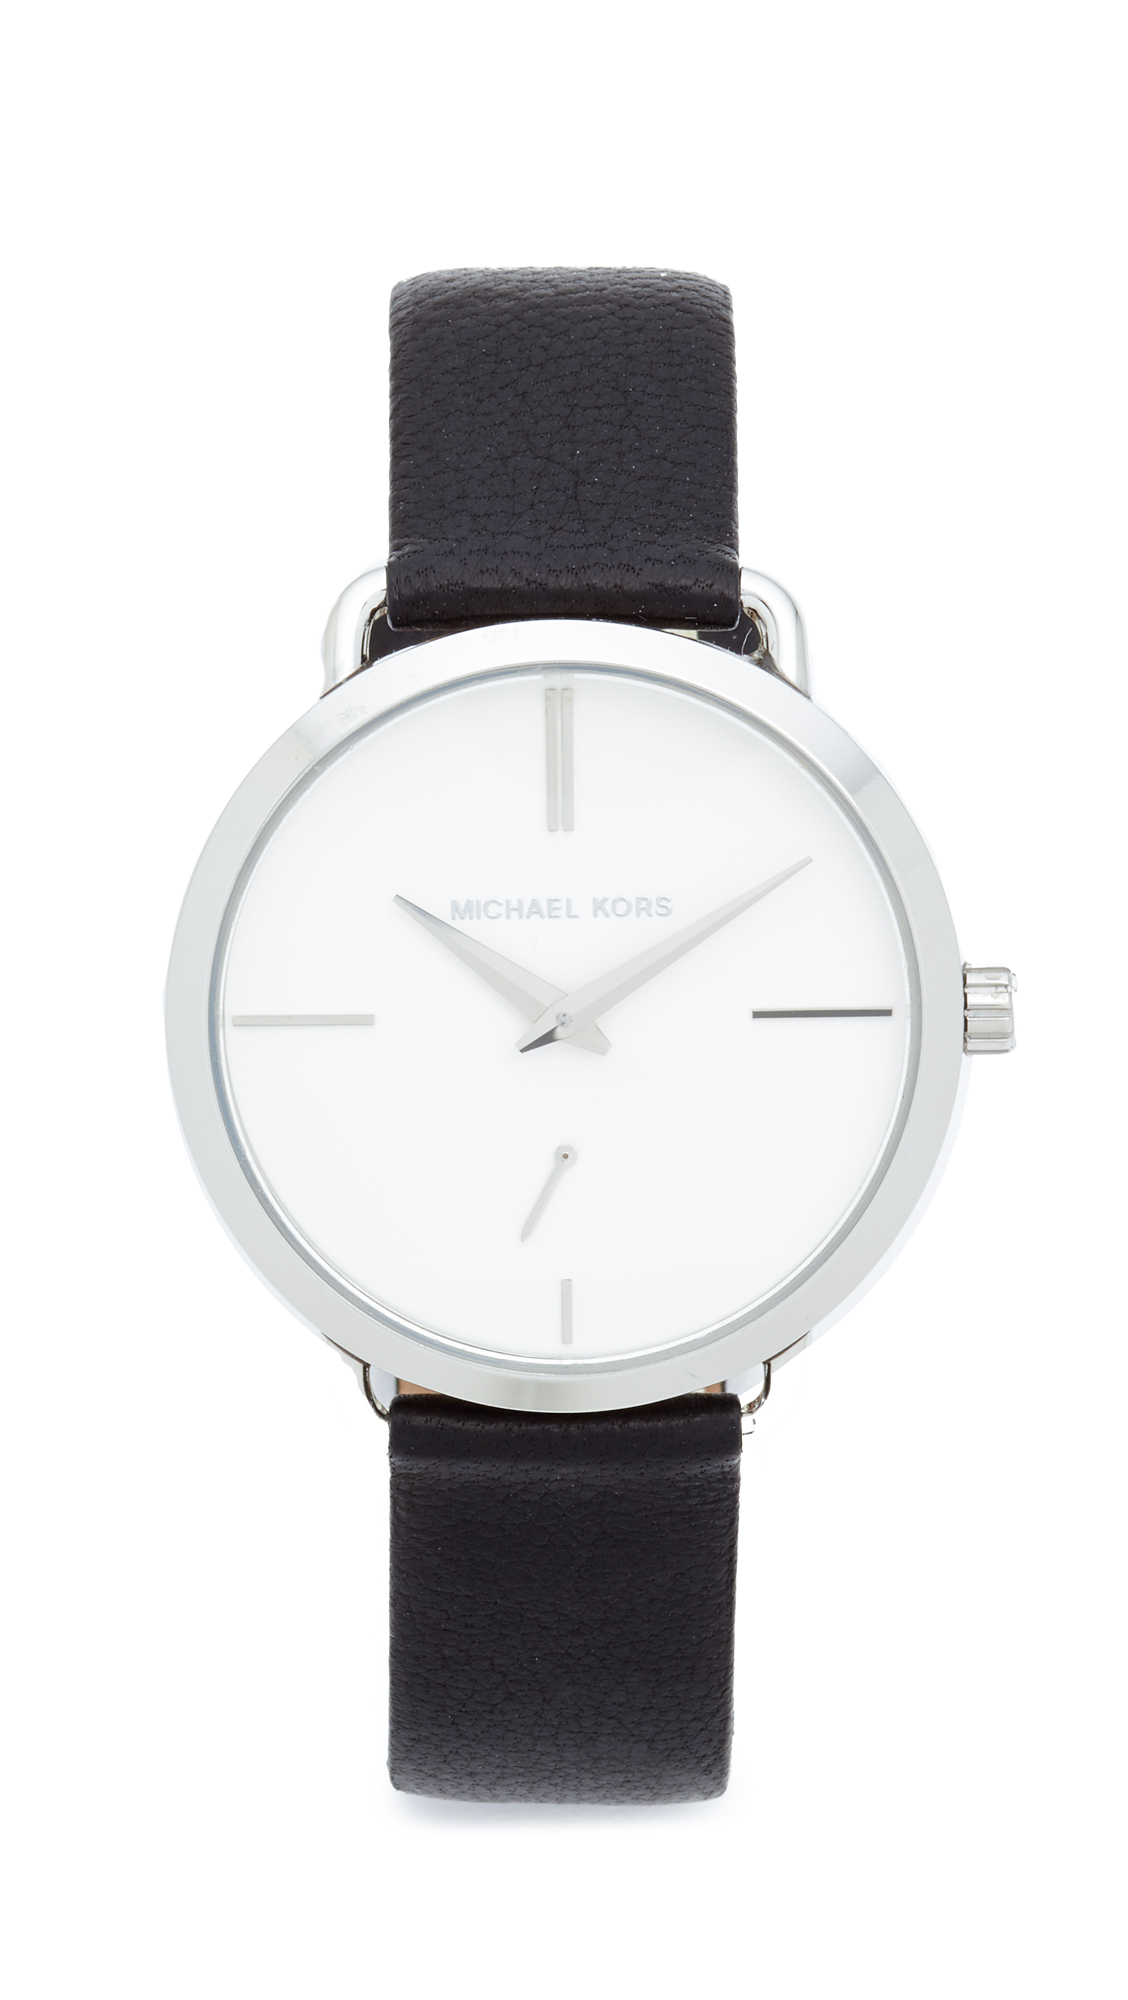 michael kors female michael kors partia leather watch silverwhiteblack